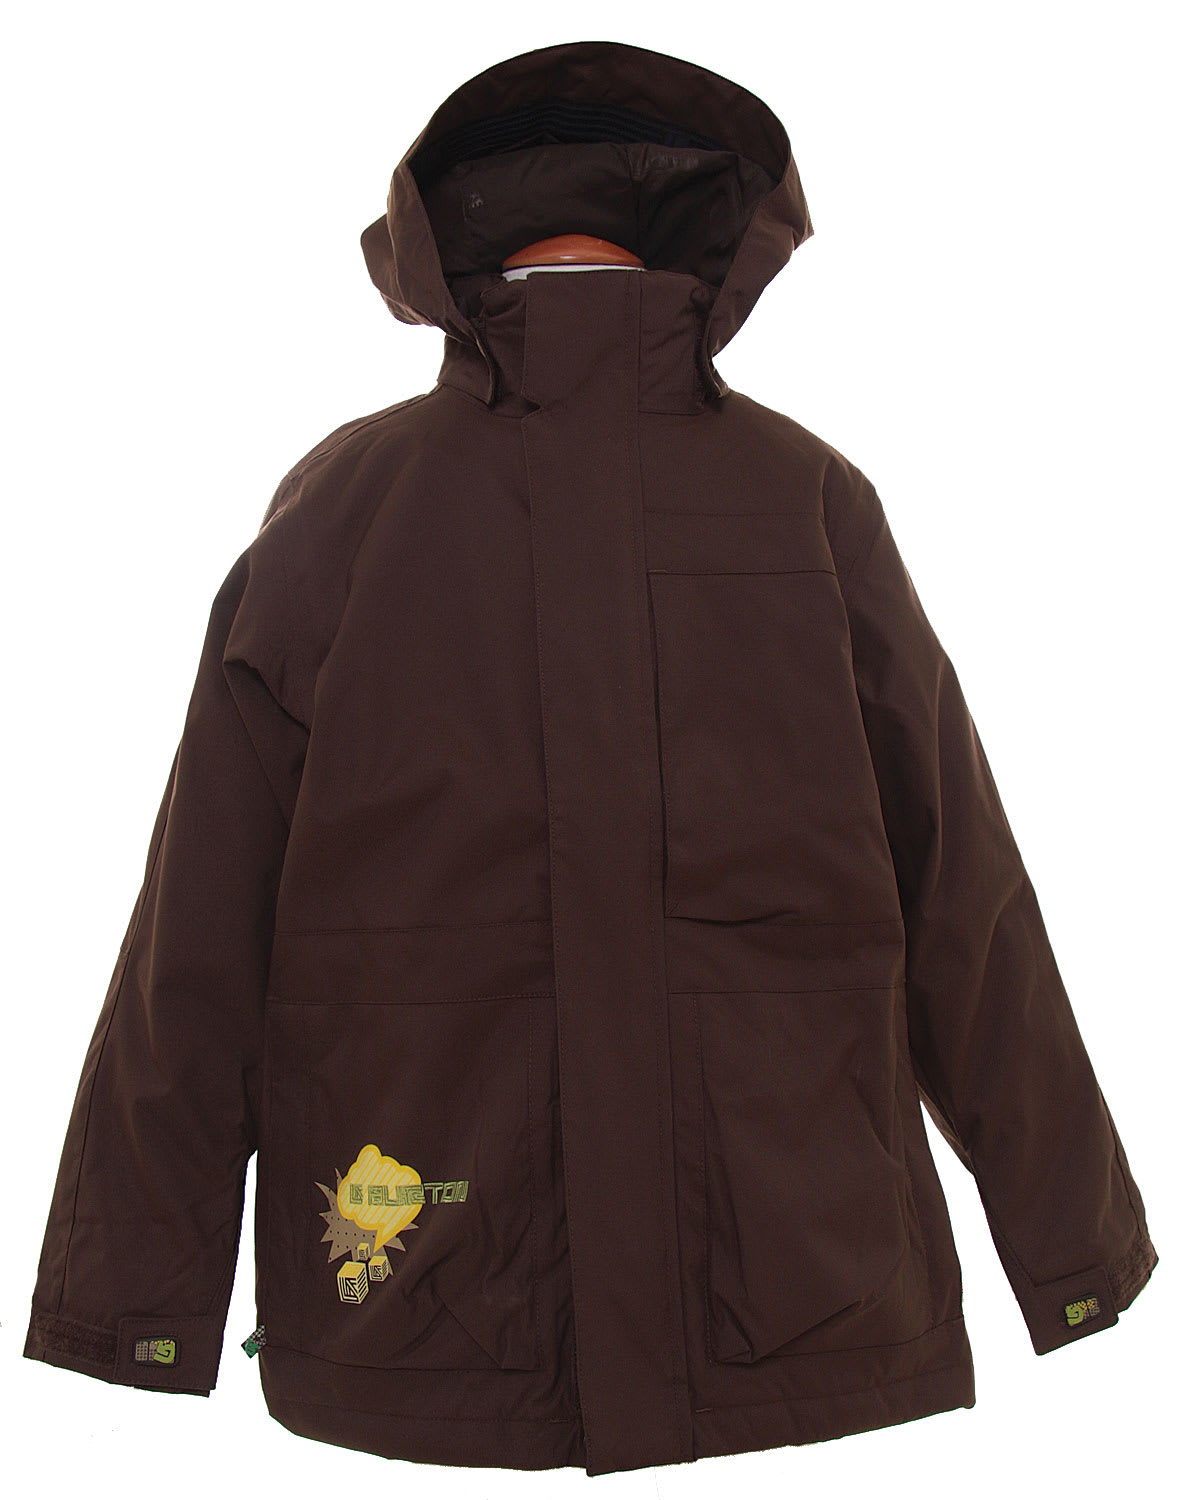 Shop for Burton Poacher Snowboard Jacket Mocha - Kid's